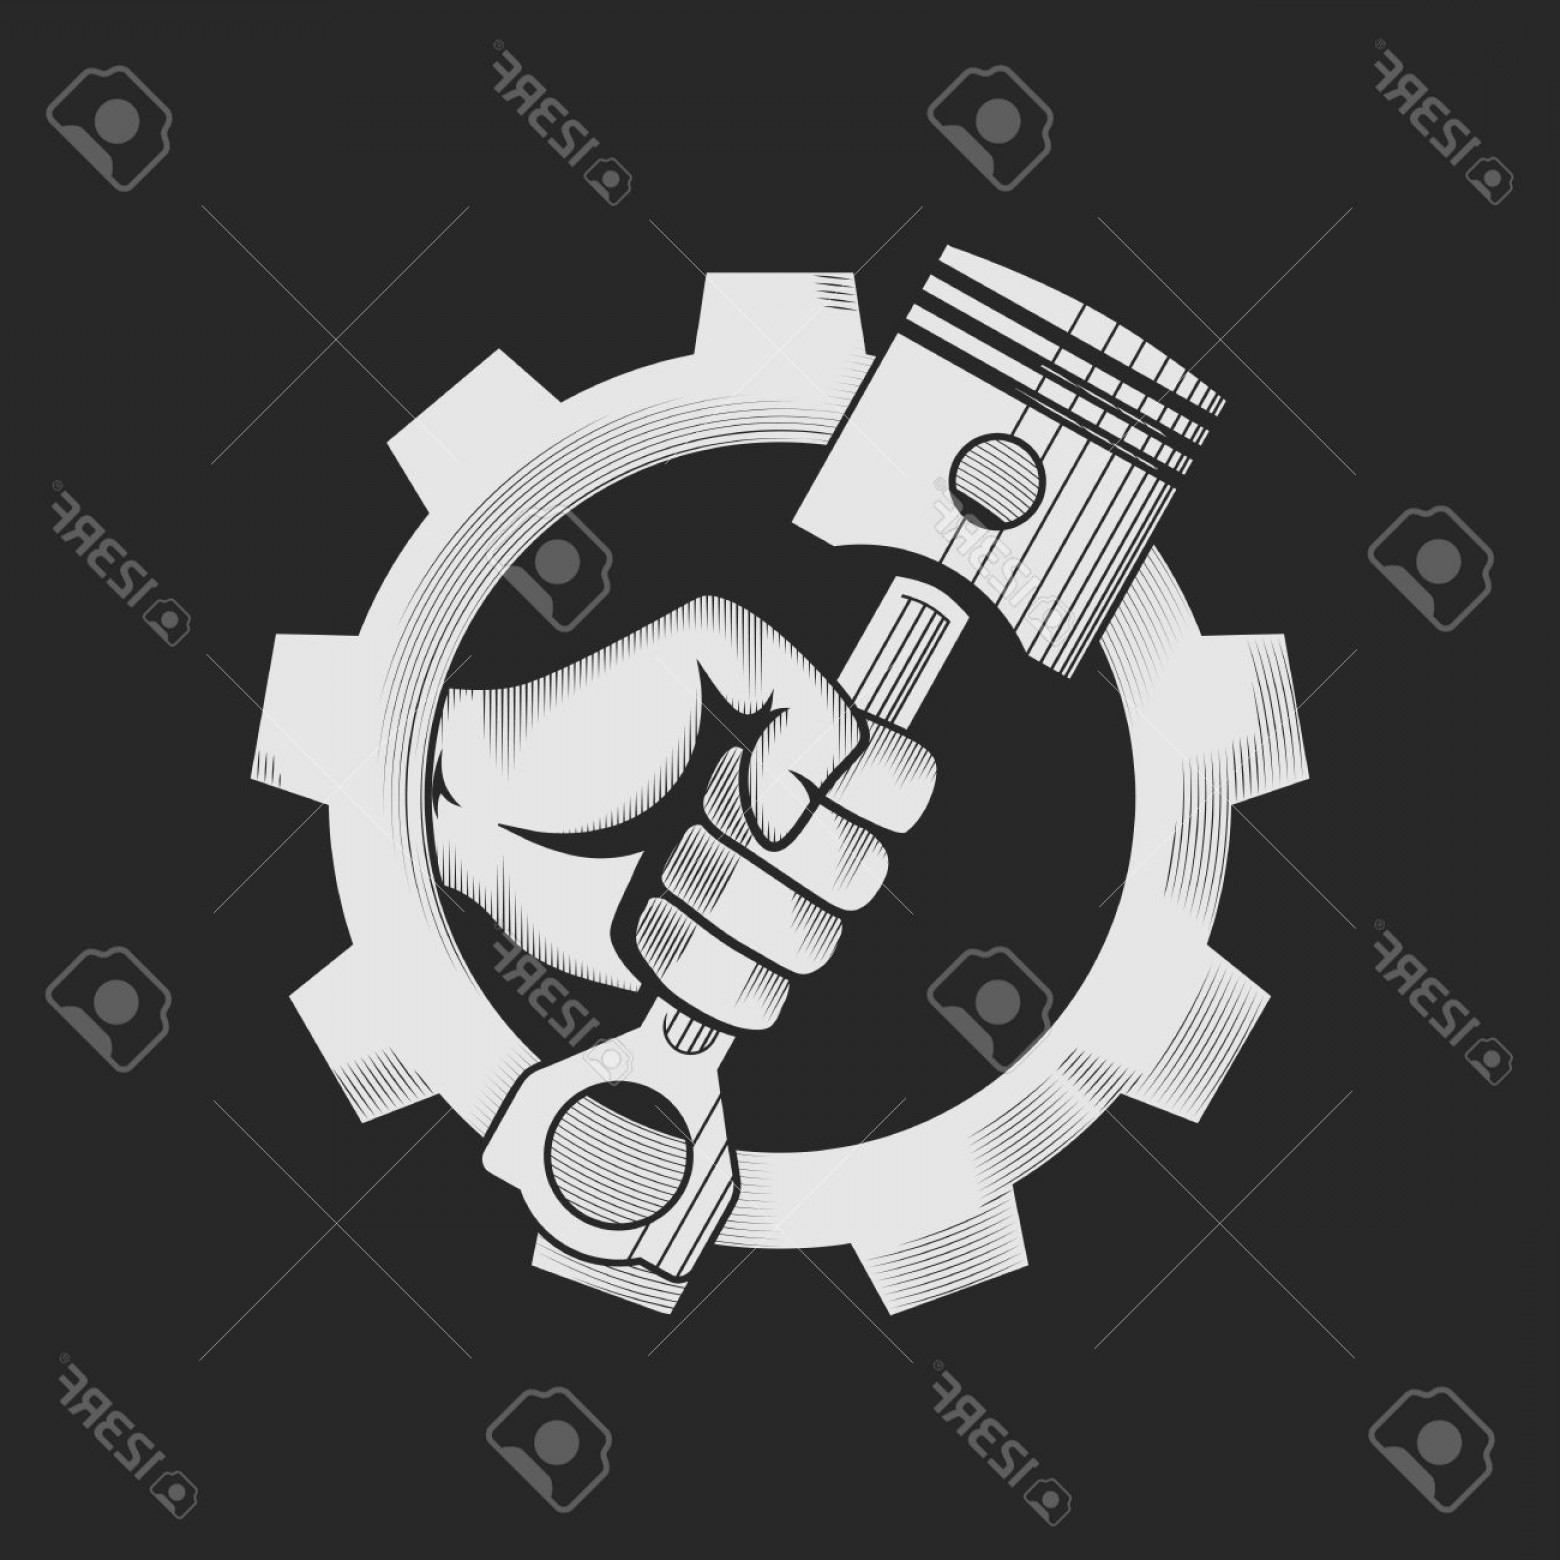 Workshop Icon Vector: Photostock Vector Car Or Bike Workshop Logo Template Concept Car Engine Pistons In The Hand And Gear Combined In Vecto